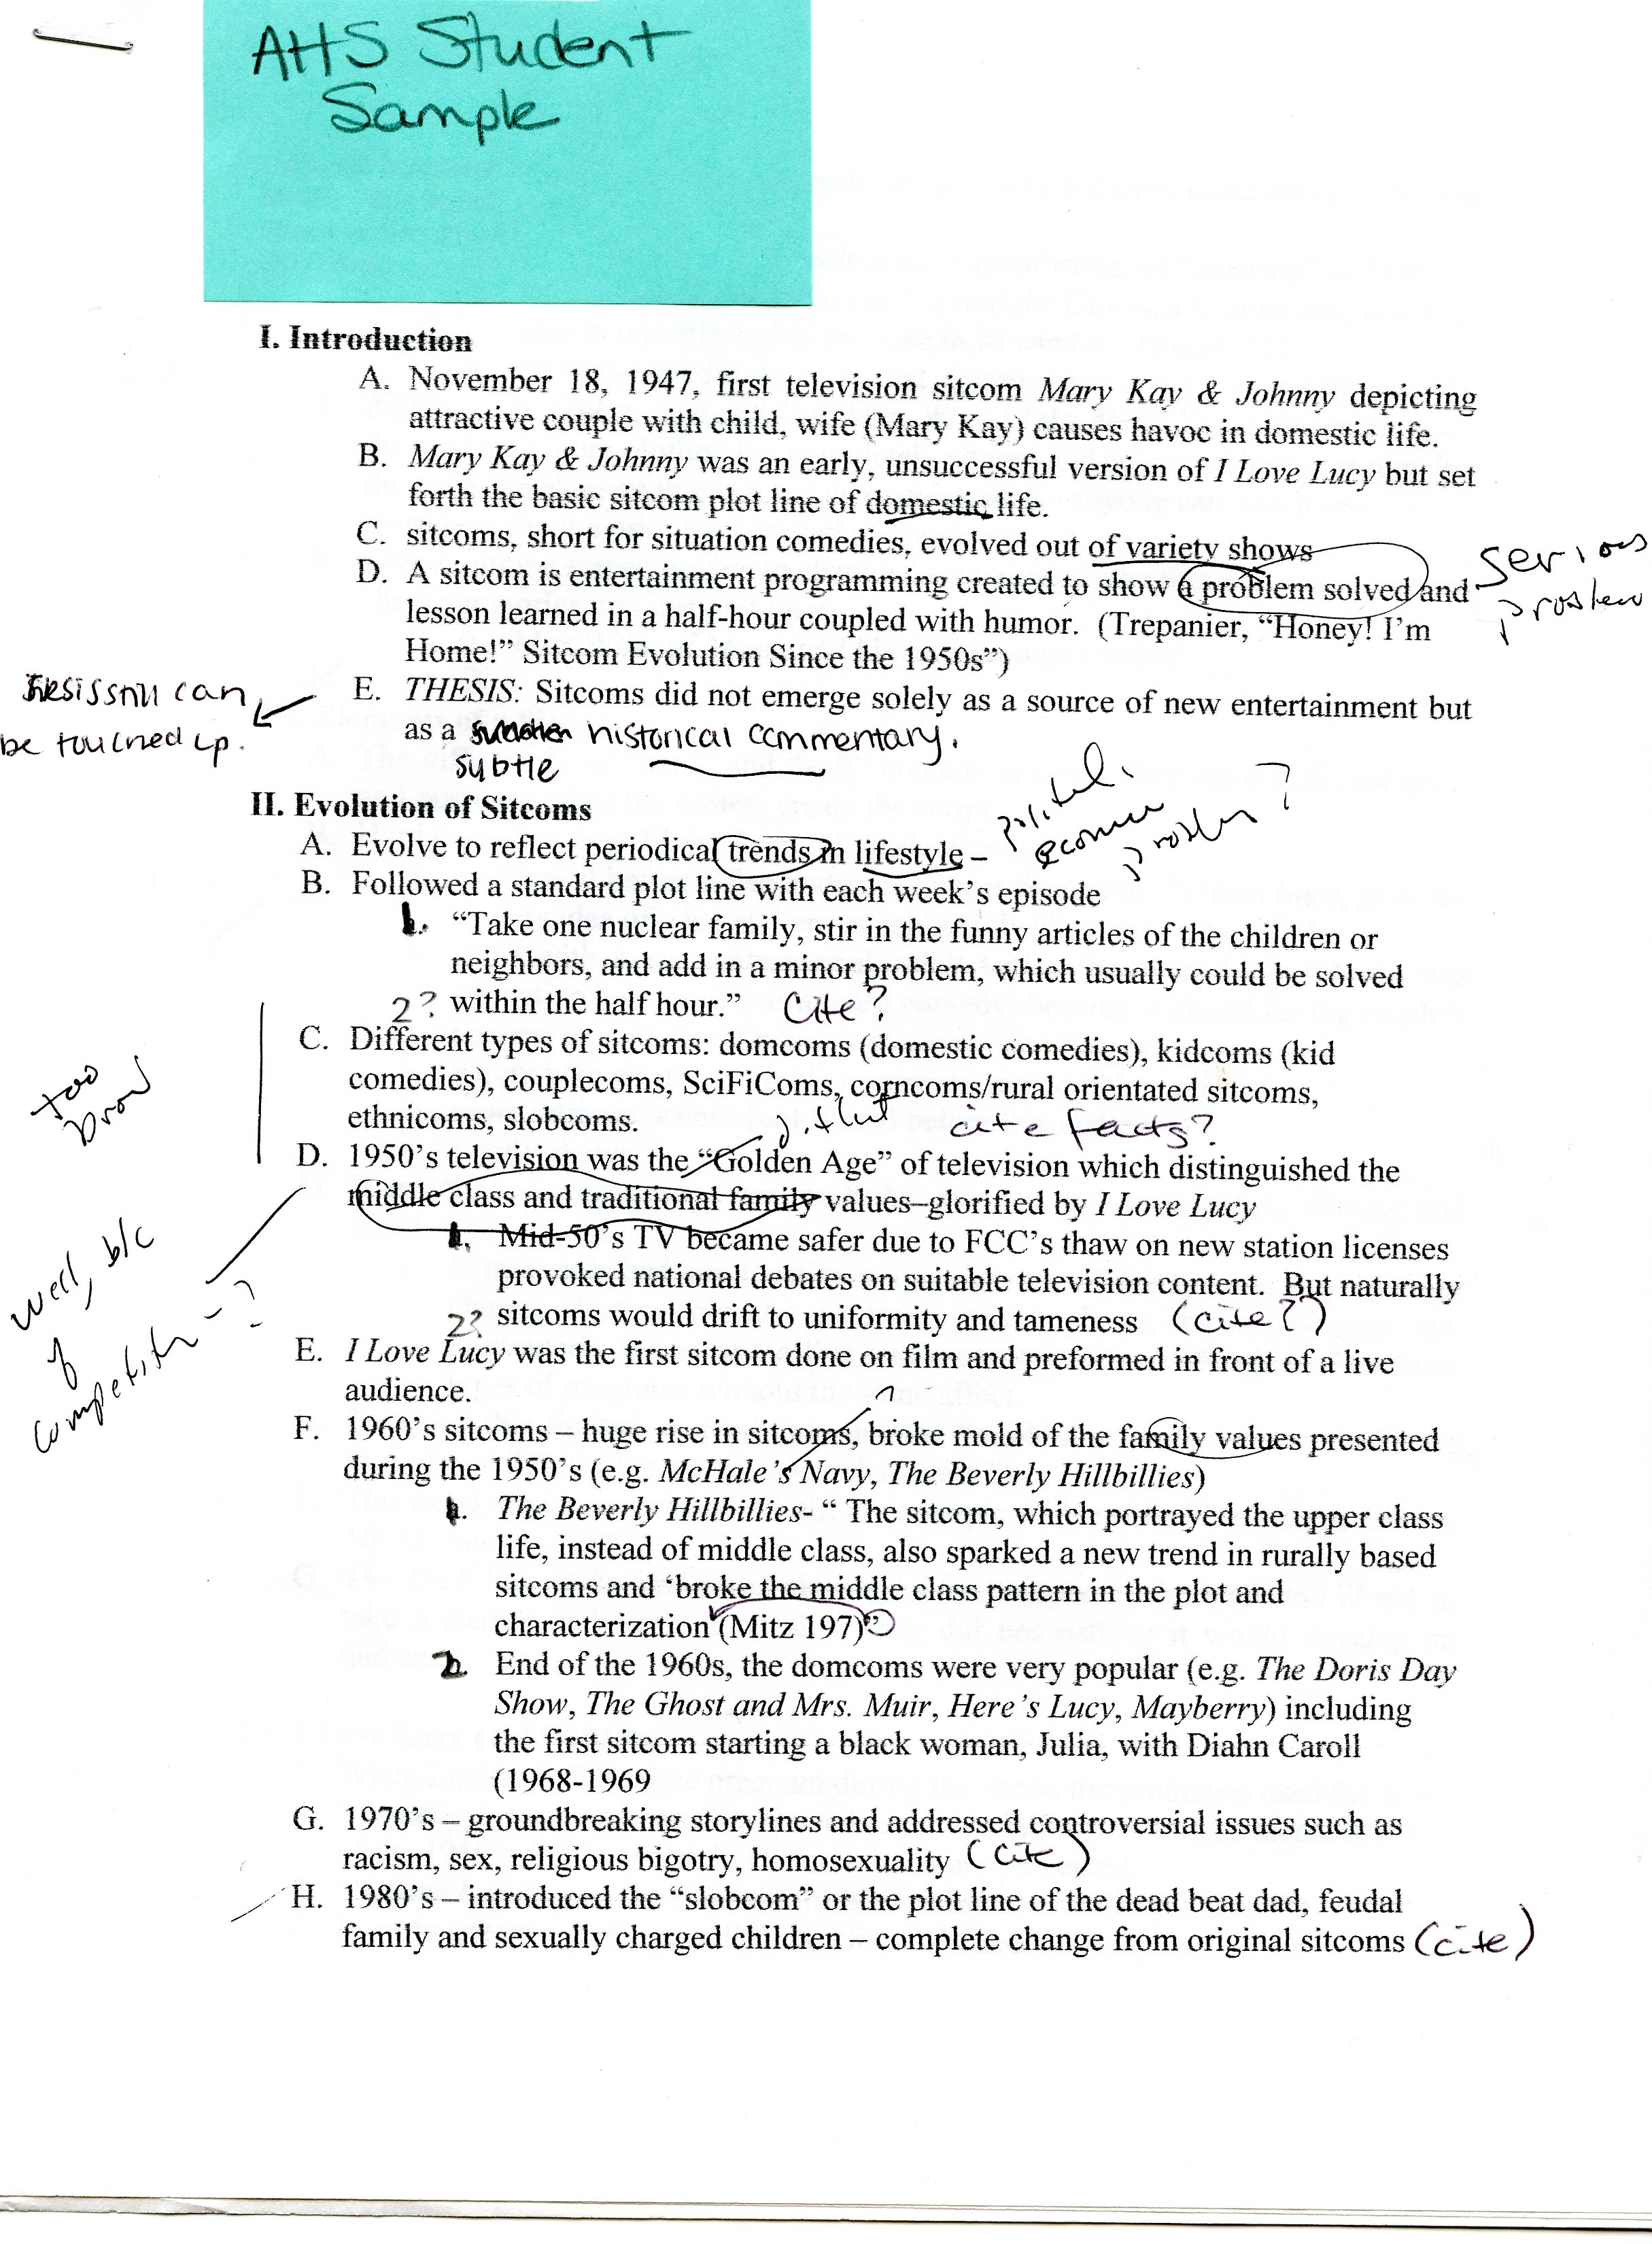 006 Smp Sample Outline 1 Thematic Essays Phenomenal Essay Examples For Us History Regents Global Full